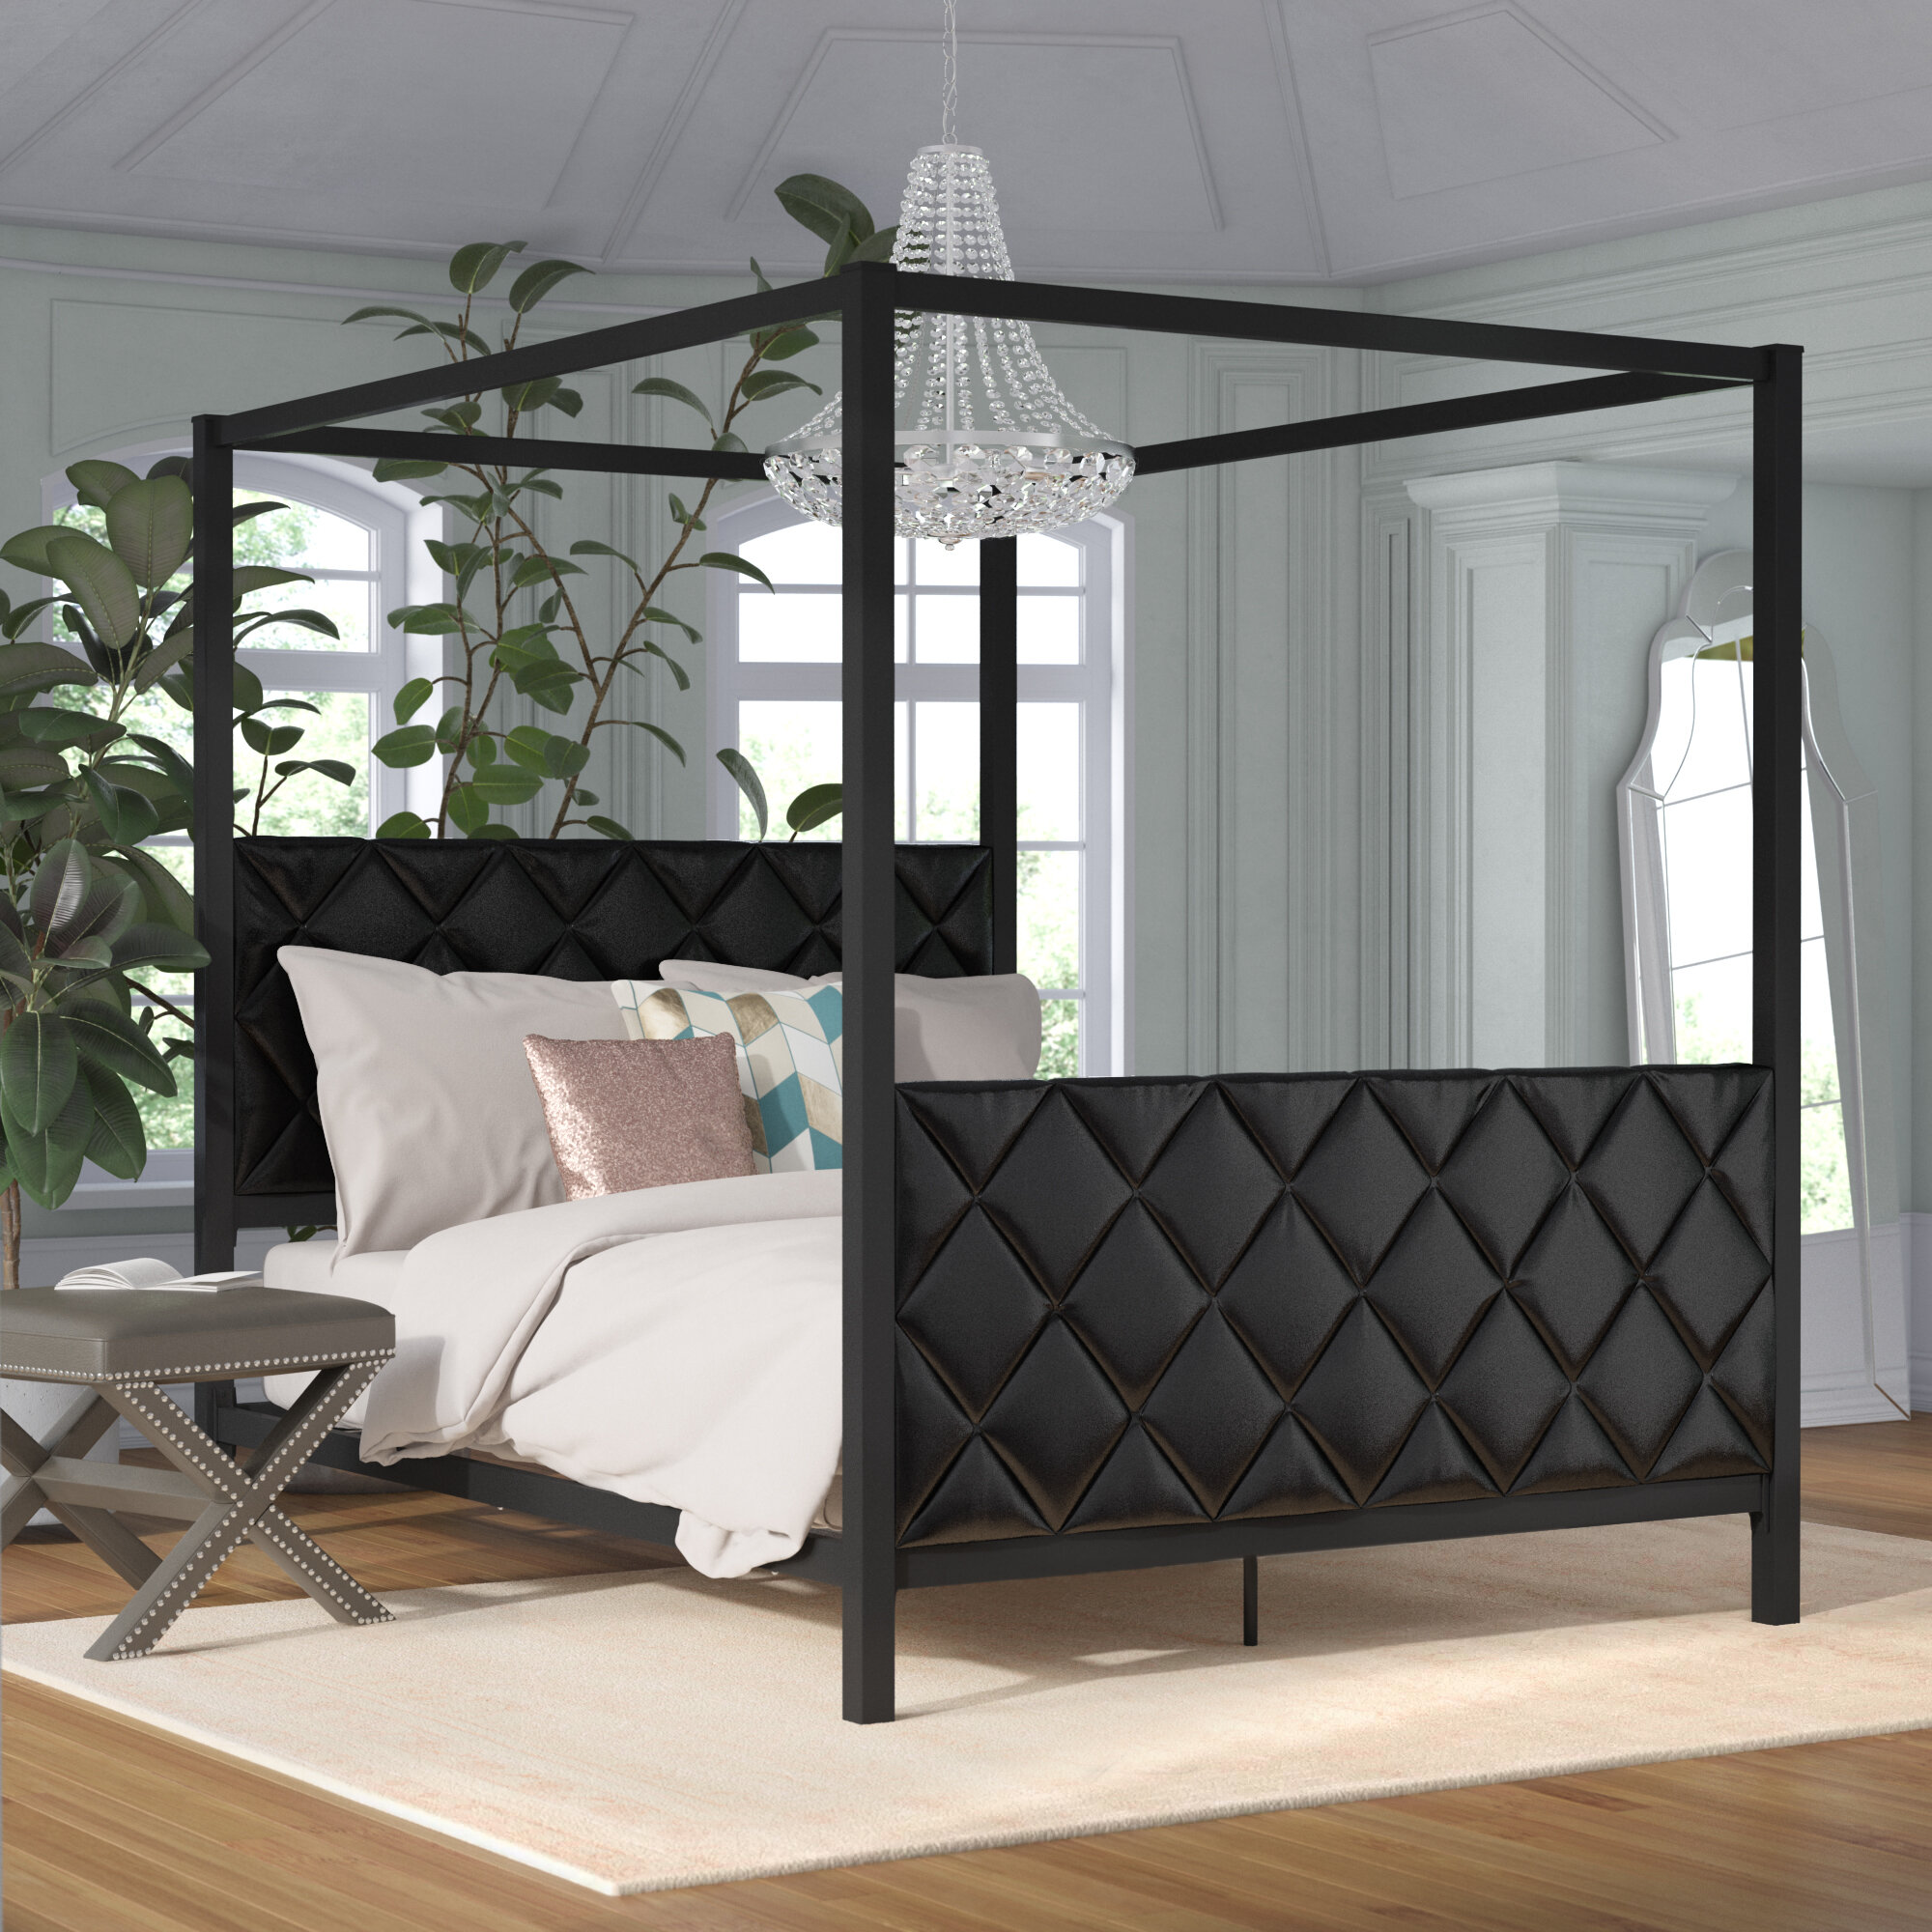 - Willa Arlo Interiors Albritton Queen Upholstered Canopy Bed